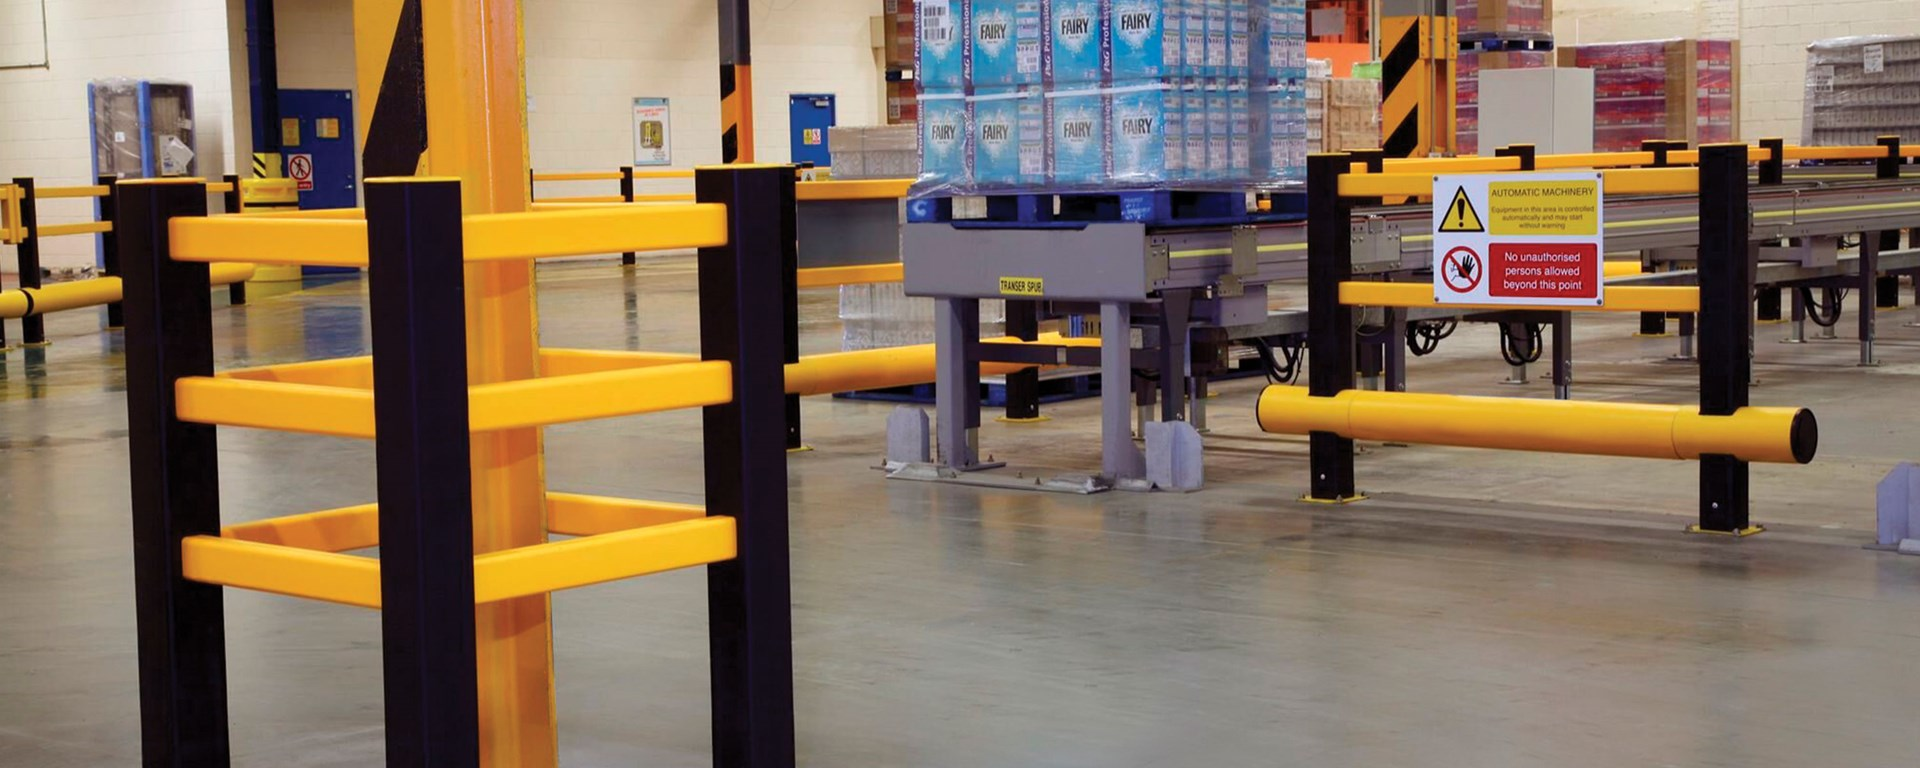 Warehousing | Traffic protection solution for distribution centre